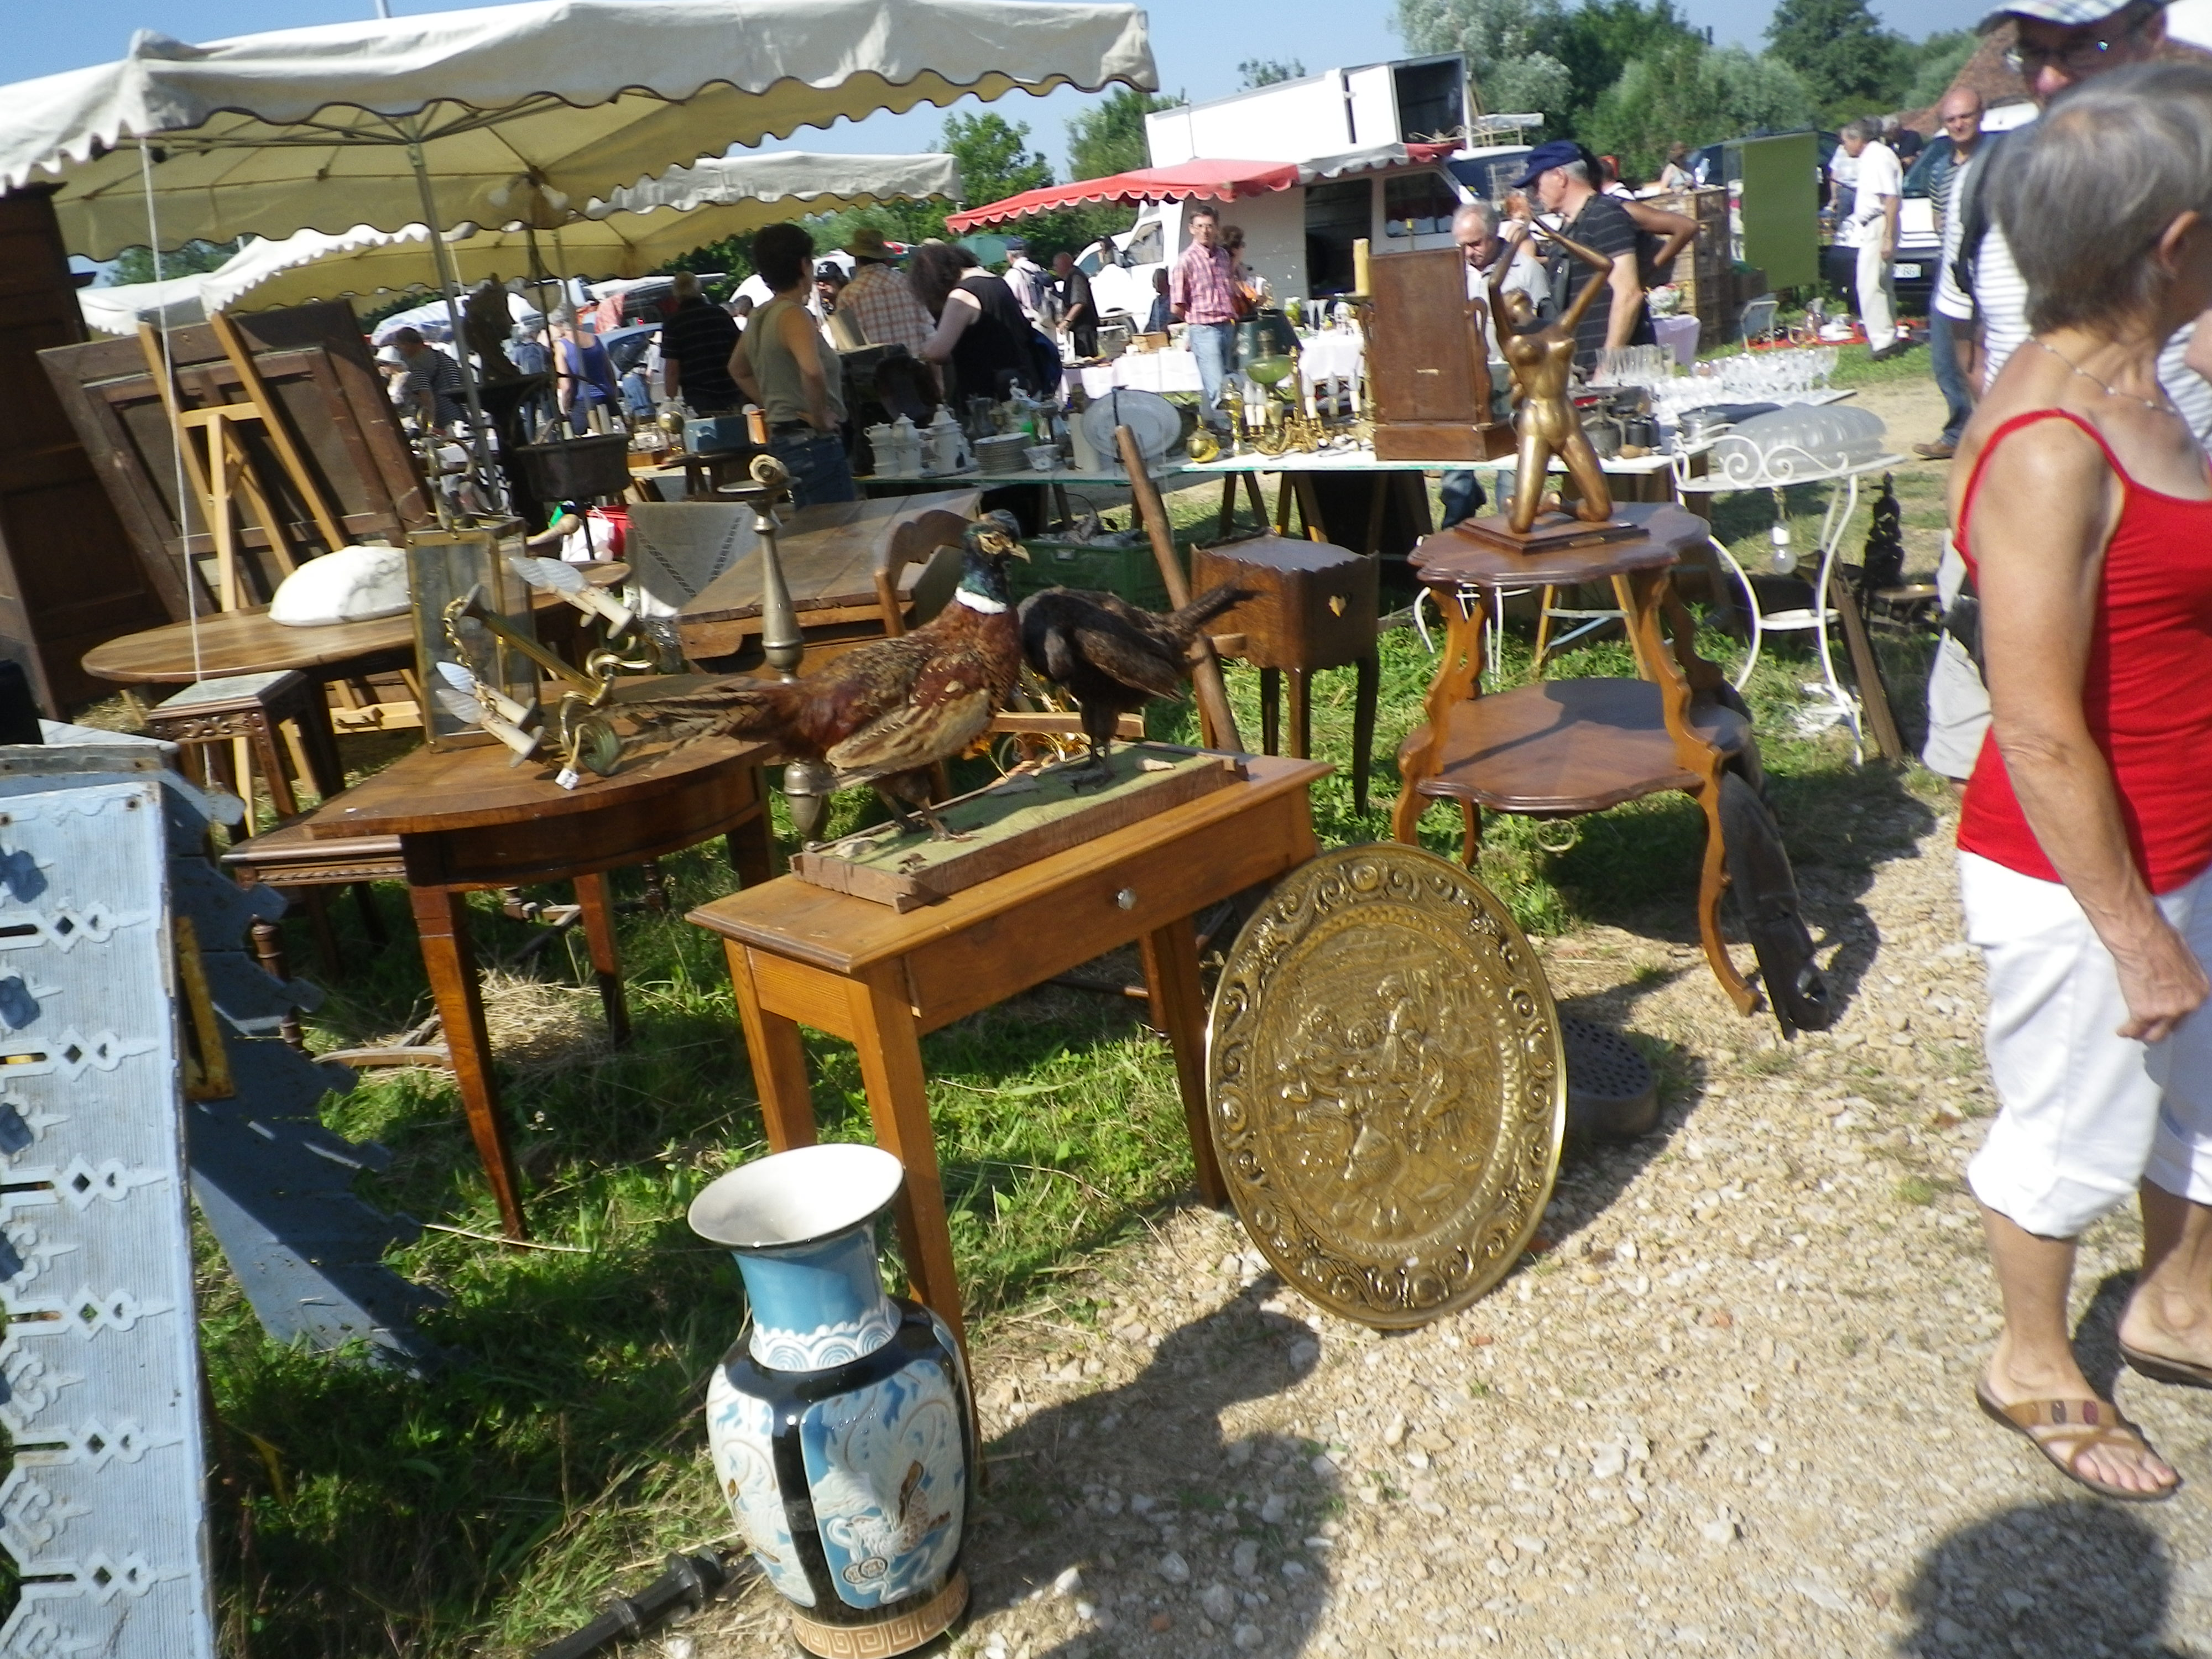 brocante grange rouge 7 juillet 2013 la bulle de marie libellule. Black Bedroom Furniture Sets. Home Design Ideas